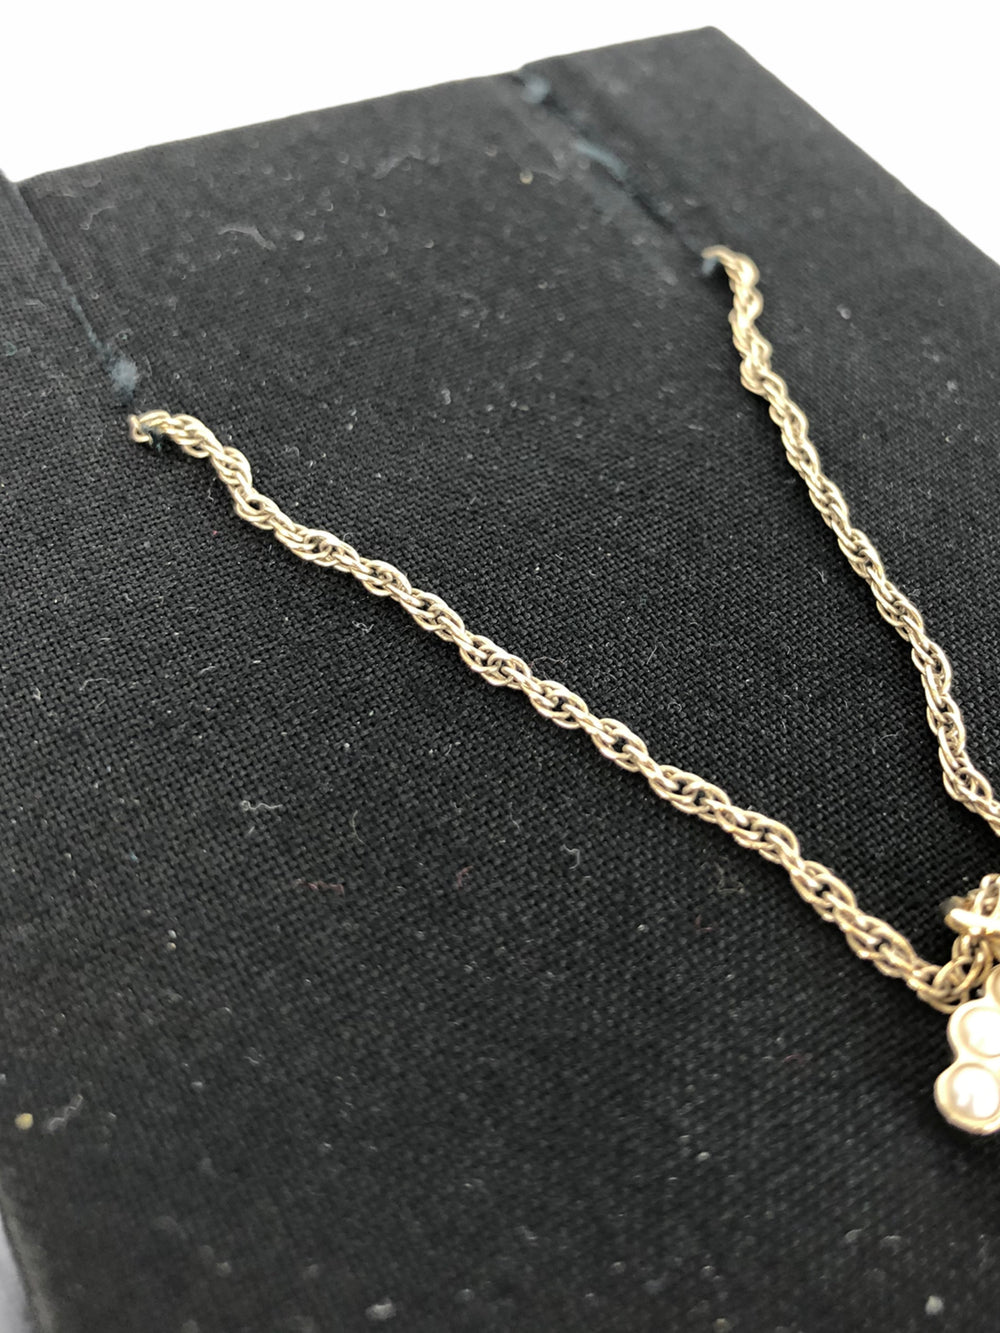 Chanel Gold Tone Necklace - As Seen on Instagram 14/10/2020